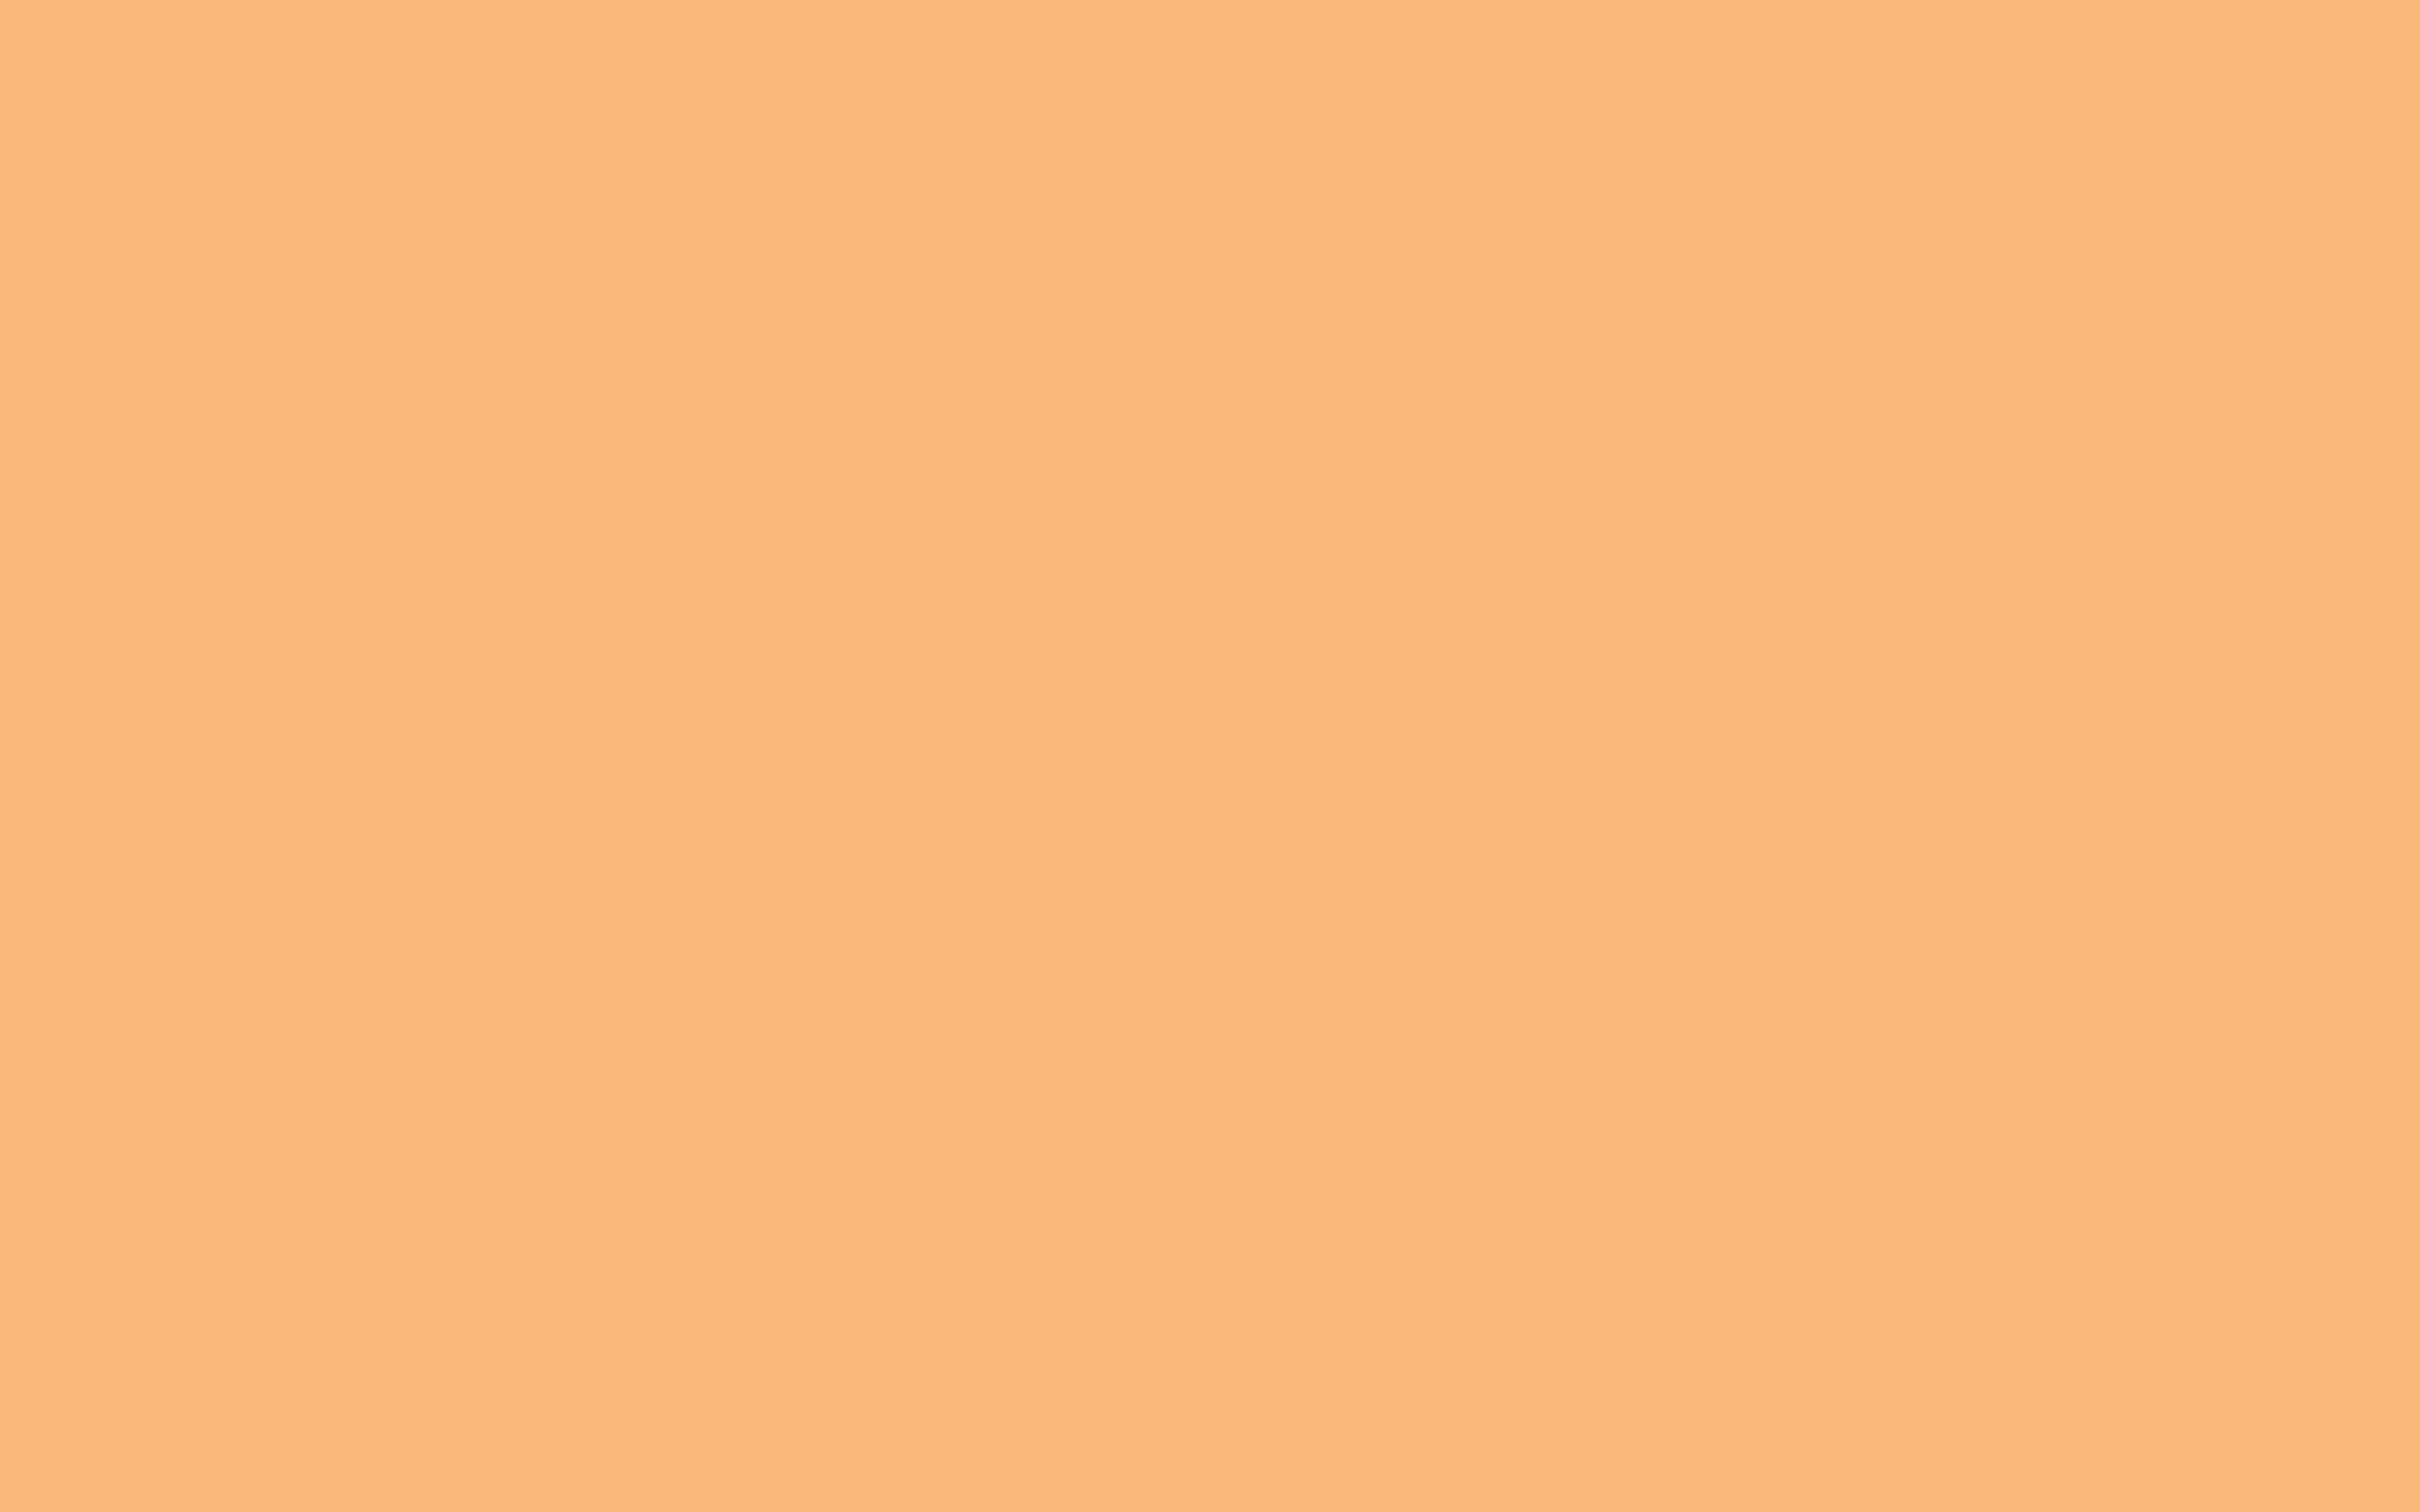 Foundation 5 background image - 2560x1600 Mellow Apricot Solid Color Background